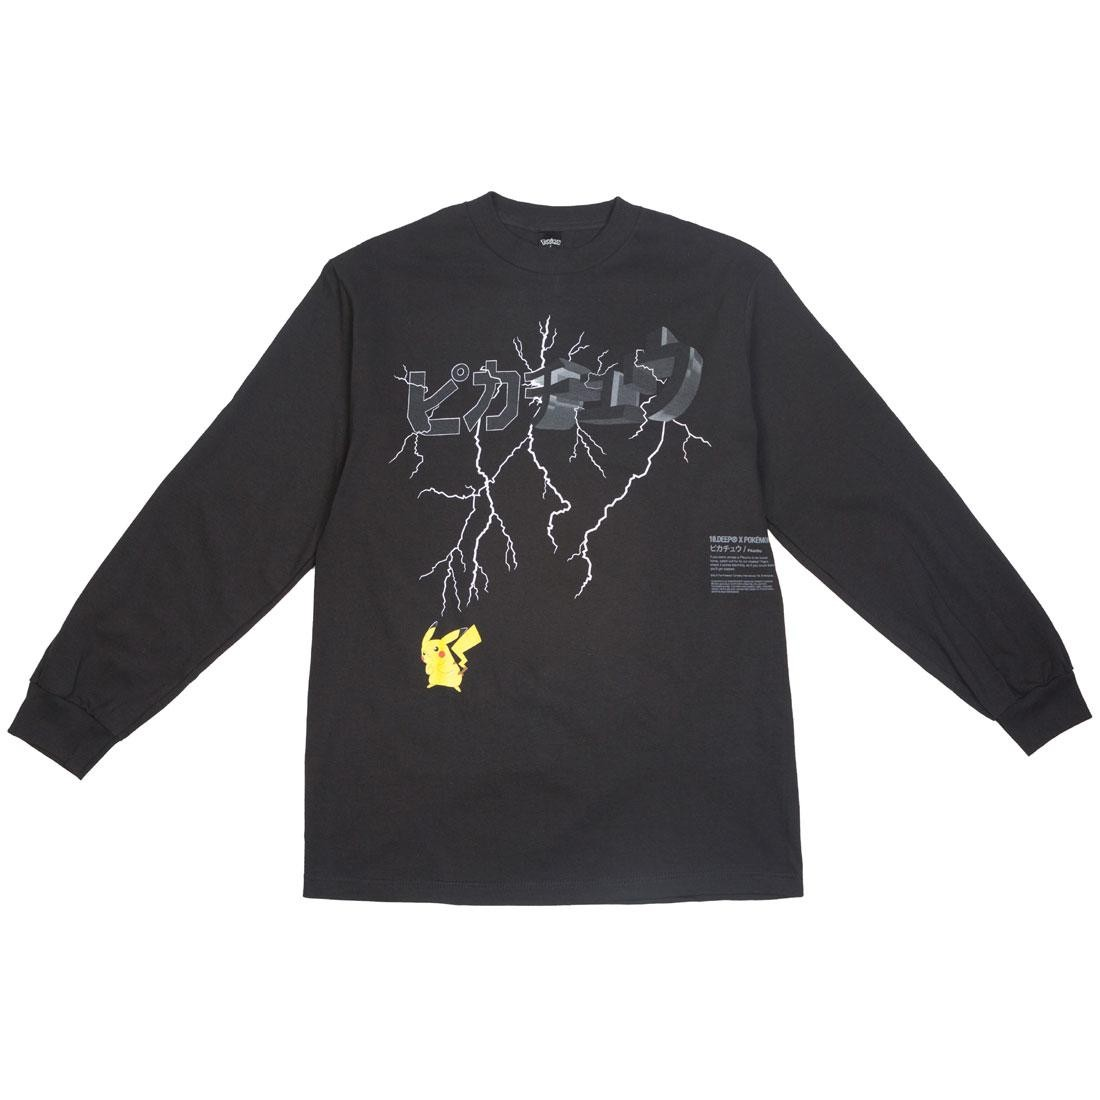 BAIT Exclusive 10 Deep x Pokemon Men Lightning Strike Long Sleeve Tee (black)